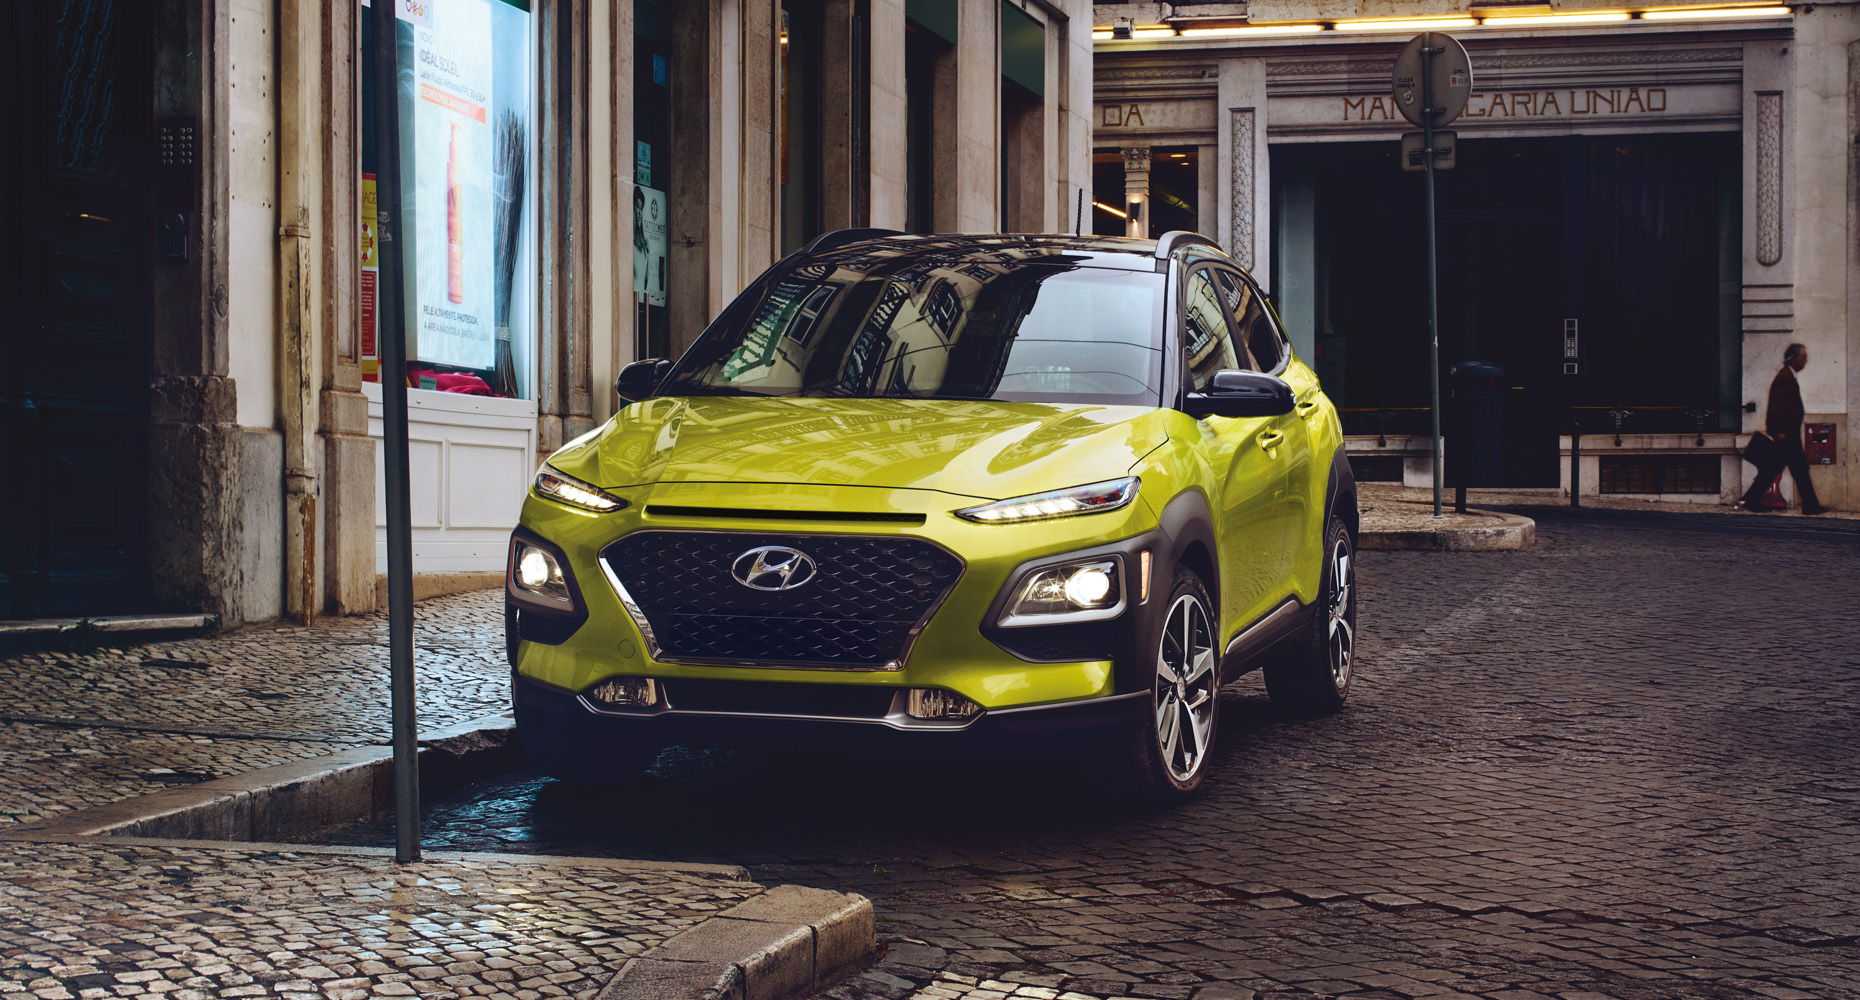 ... SUVs Crossover, And Now Its Latest Reiteration, The 2018 Hyundai Kona,  Is A Step Forward Into A Comfortable Throwback, The Hatchback Design.